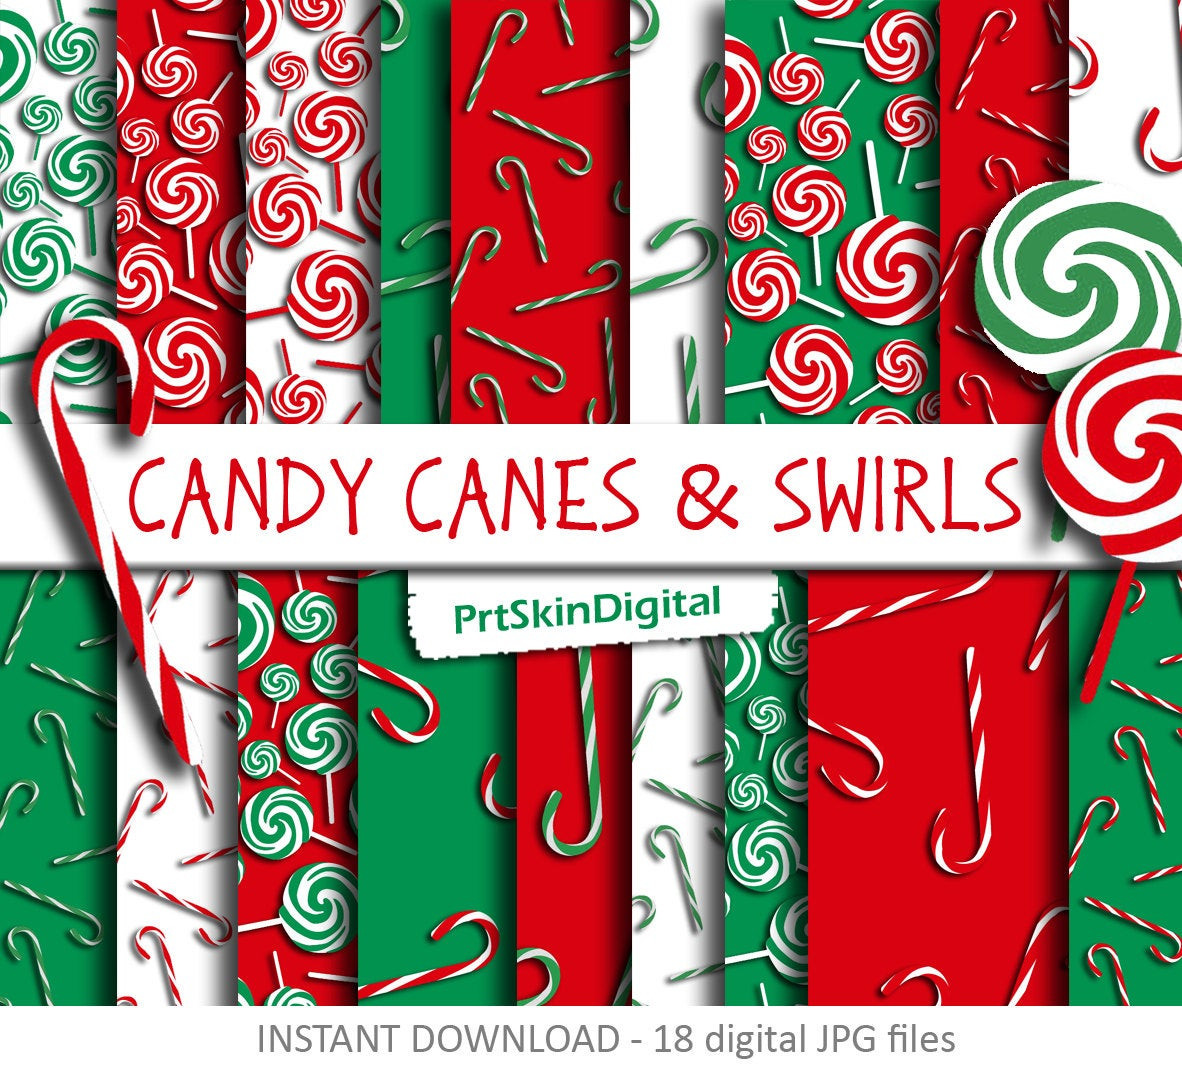 Candy Cane Christmas Shop  Christmas Digital Paper Candy Canes & Swirls with